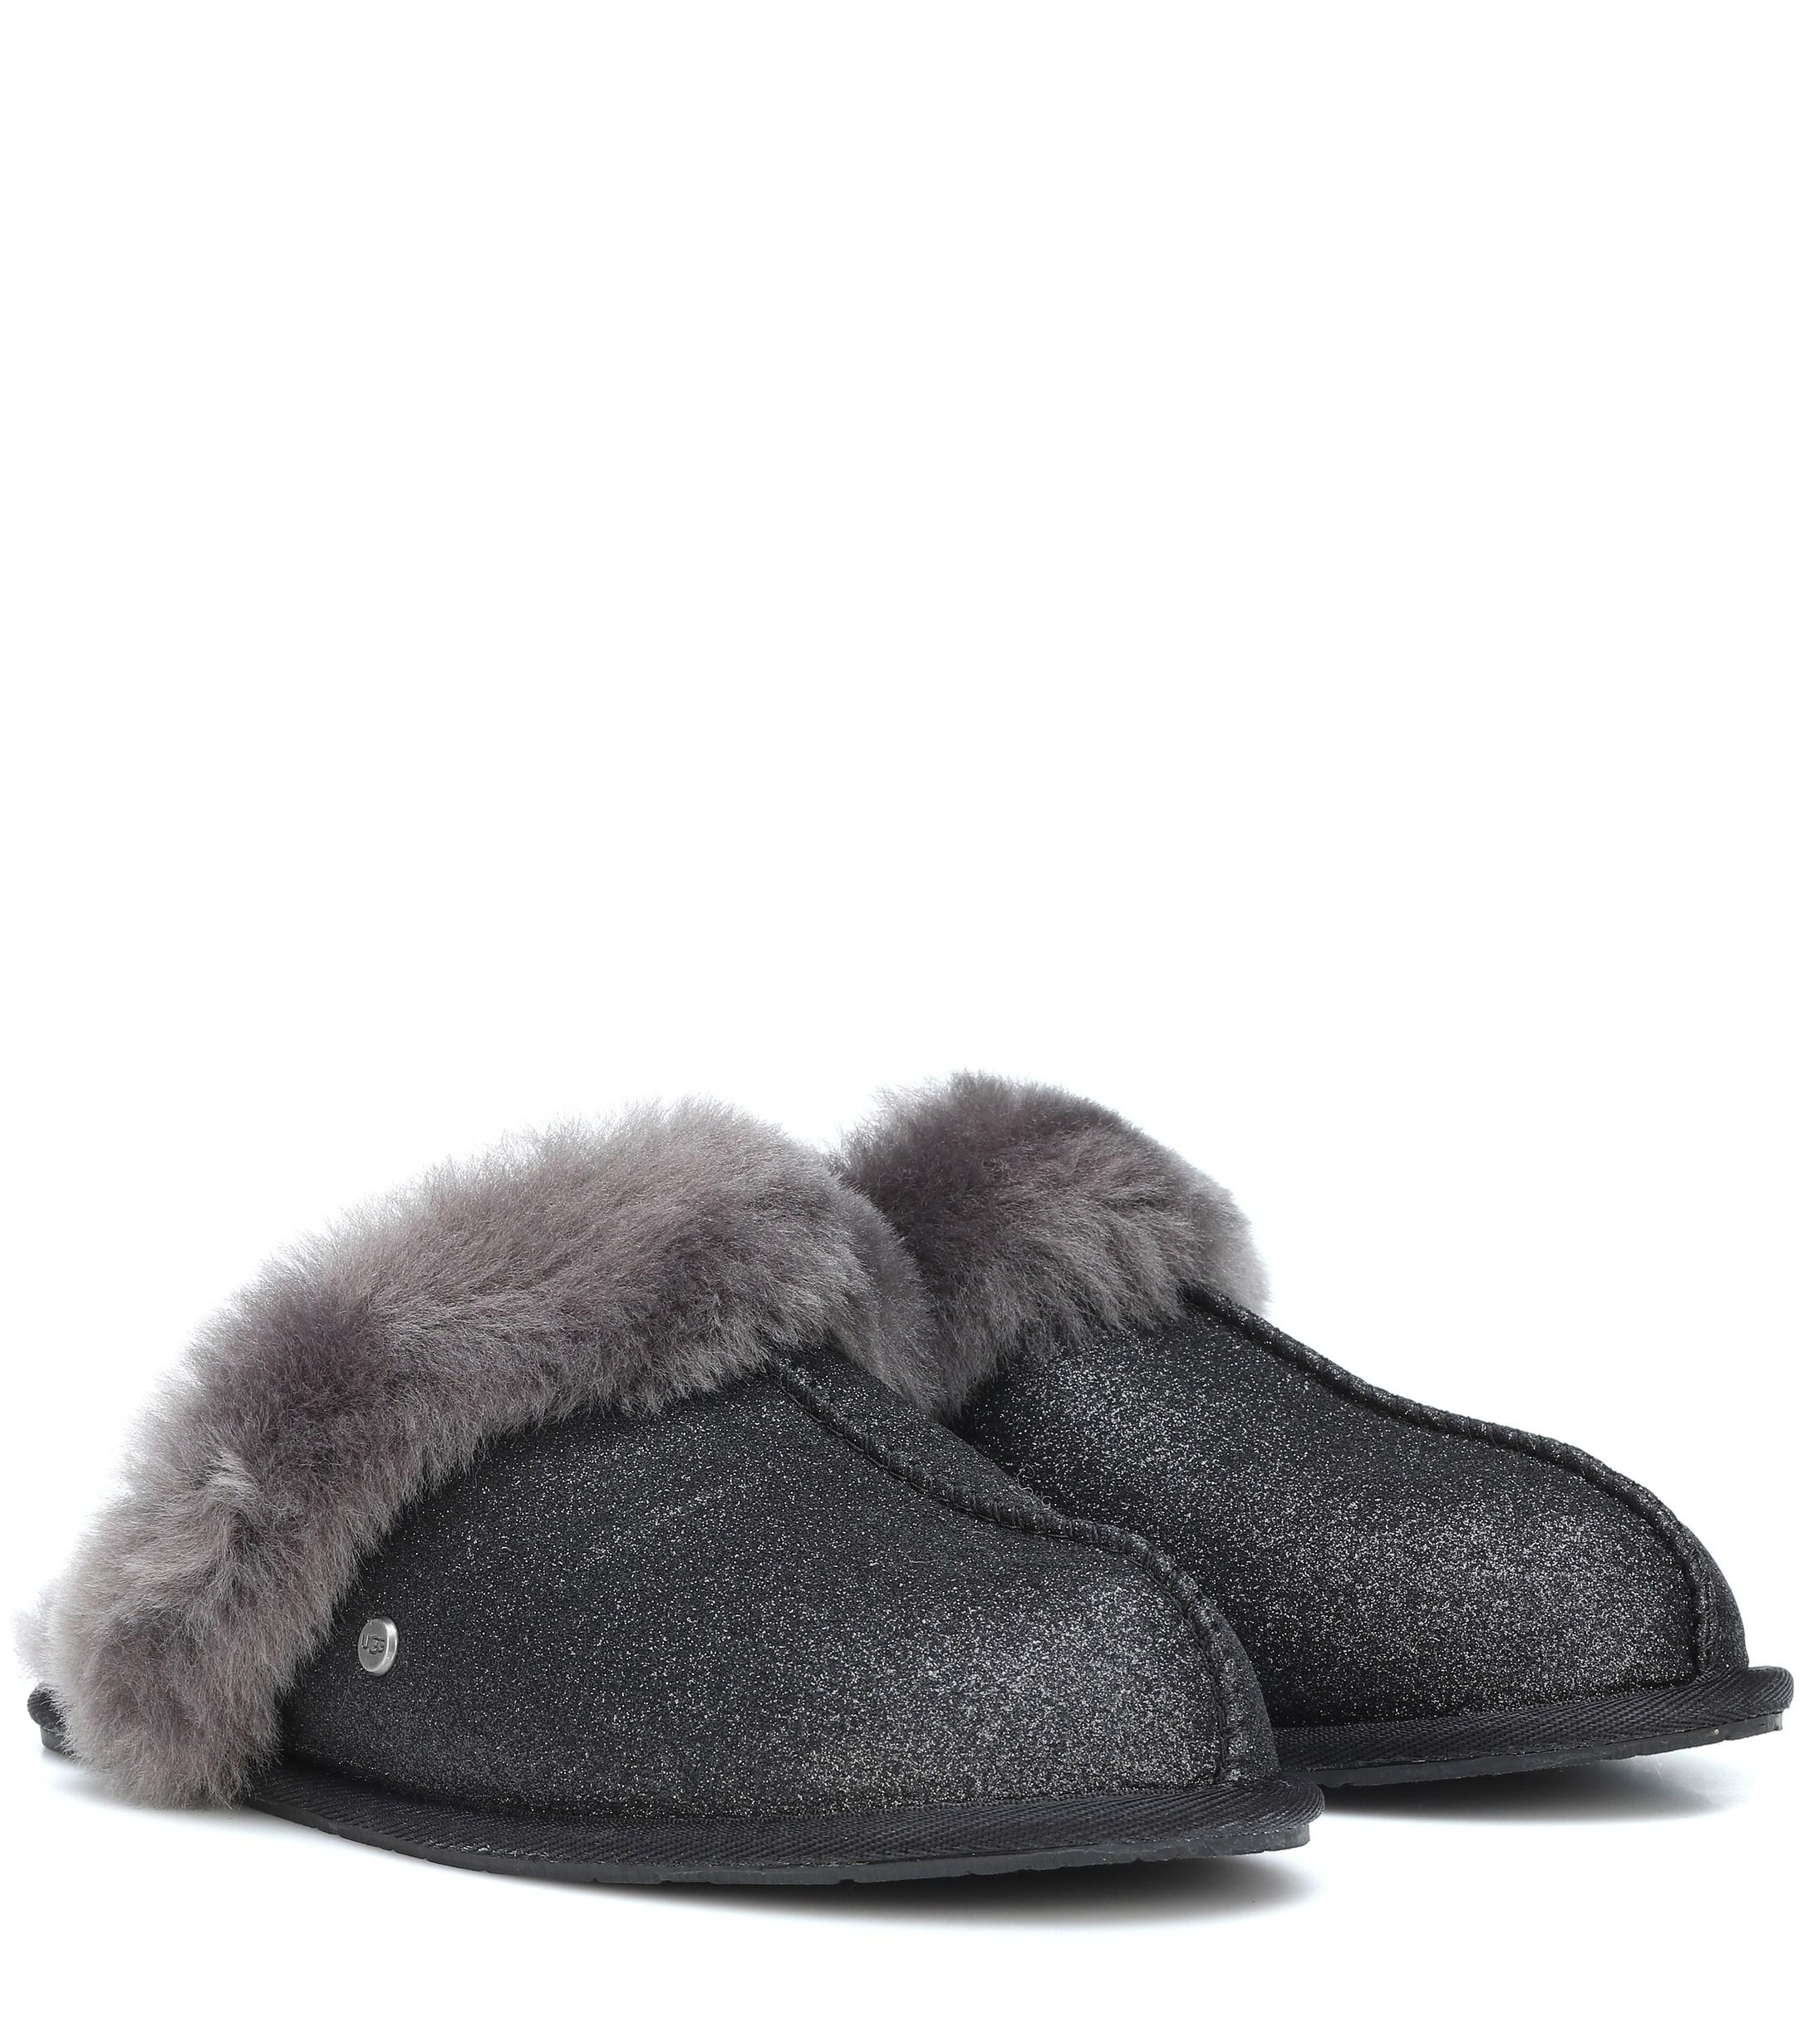 b1ceb8c27a1 Lyst - UGG Scuffette Ii Sparkle Wool Slippers in Black